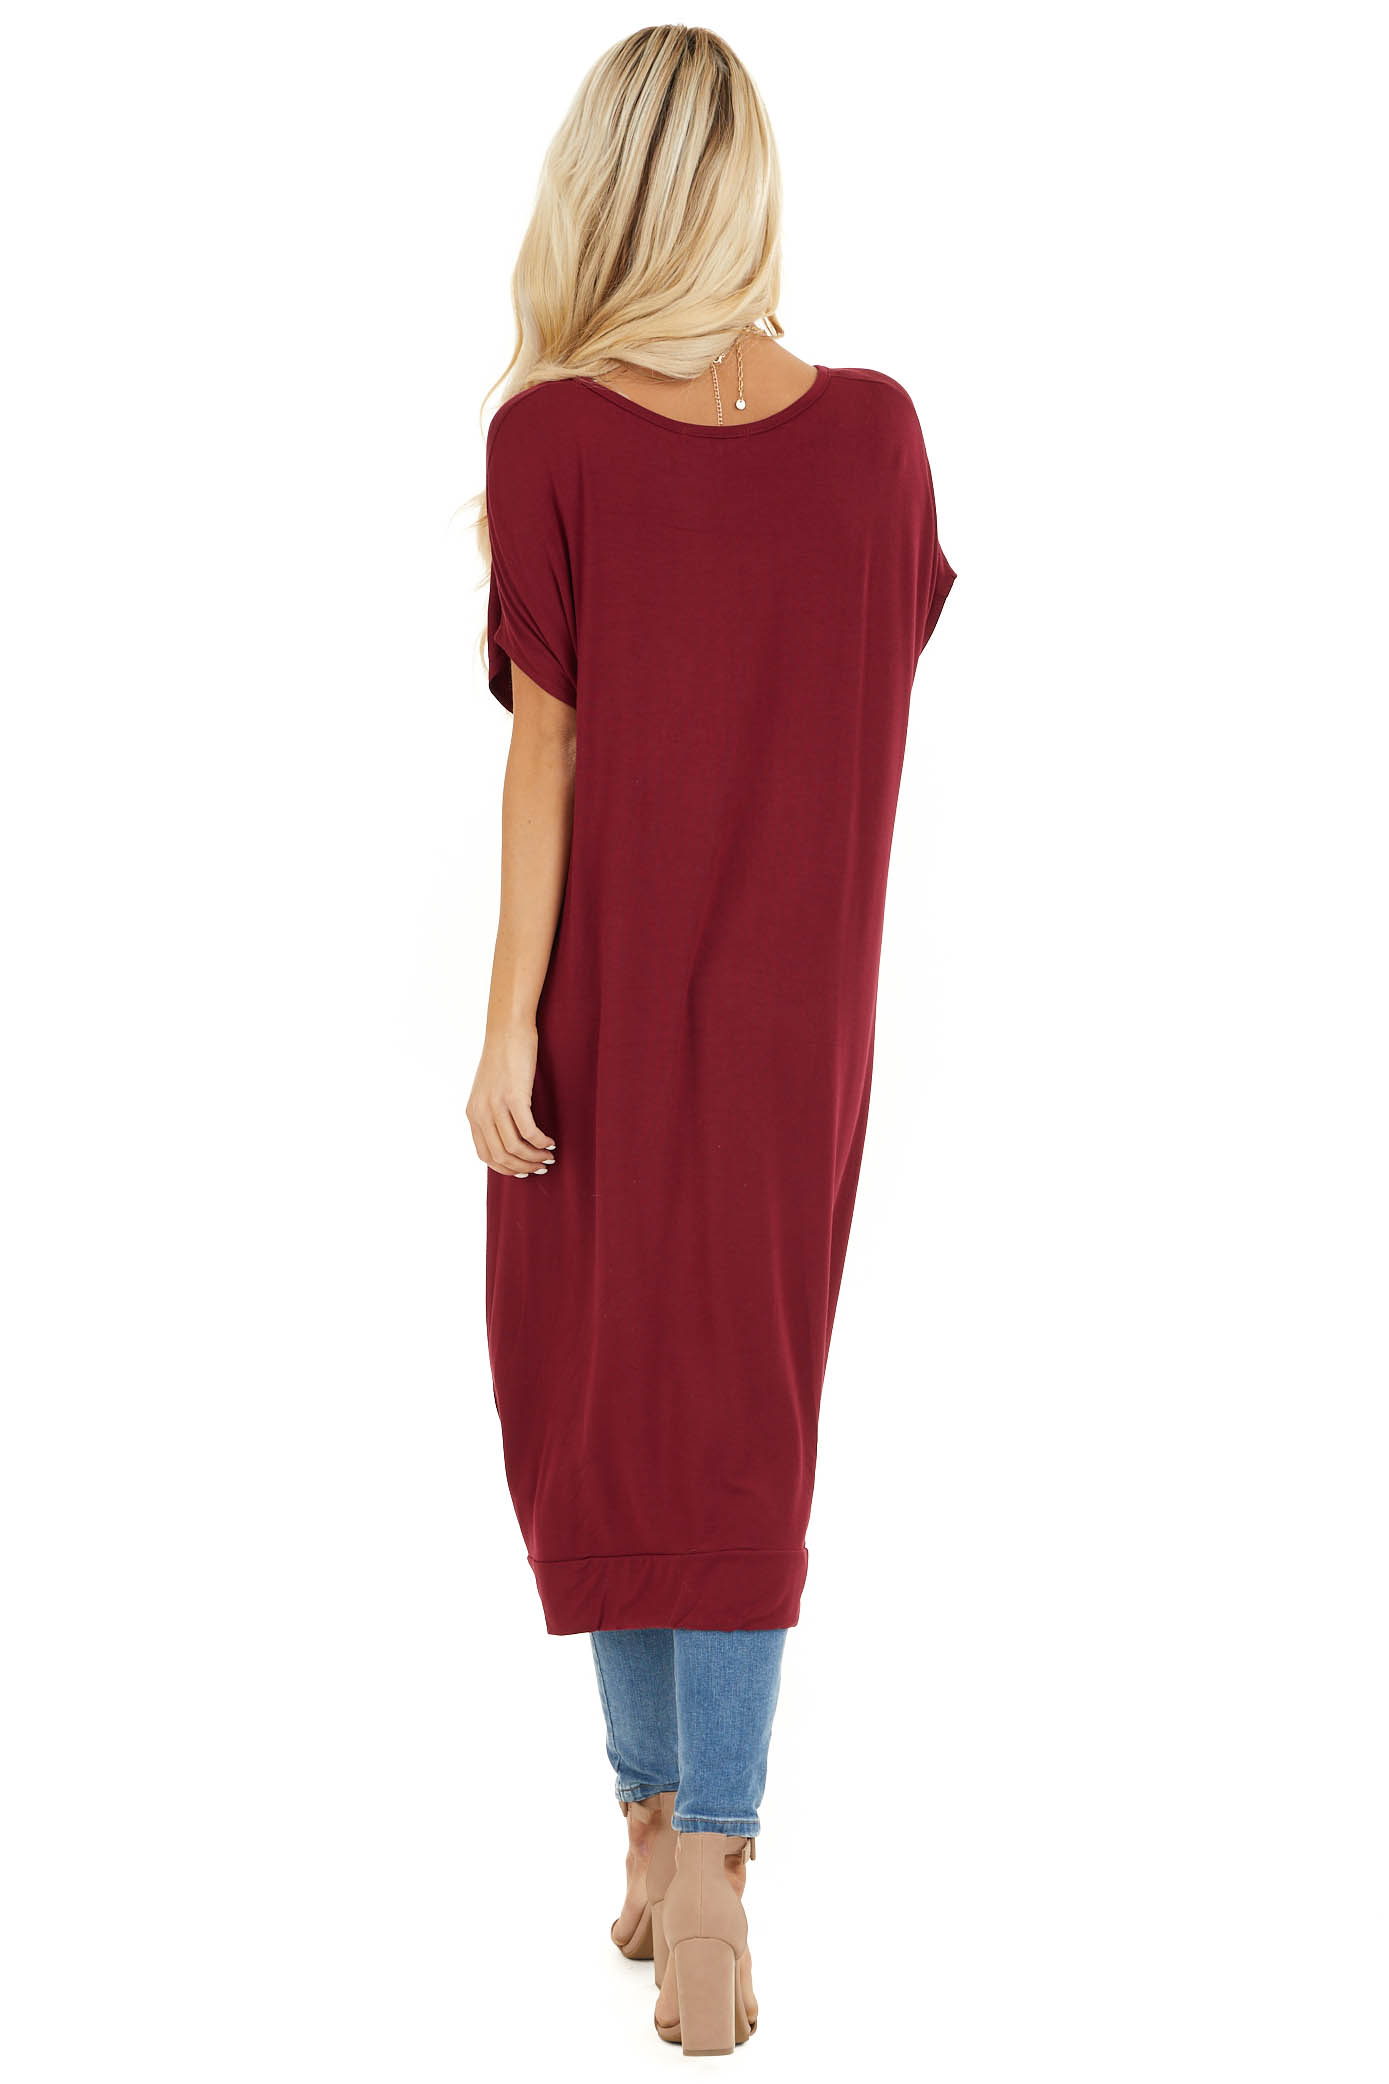 Burgundy Short Sleeve High Low Top with Twist Detail back full body